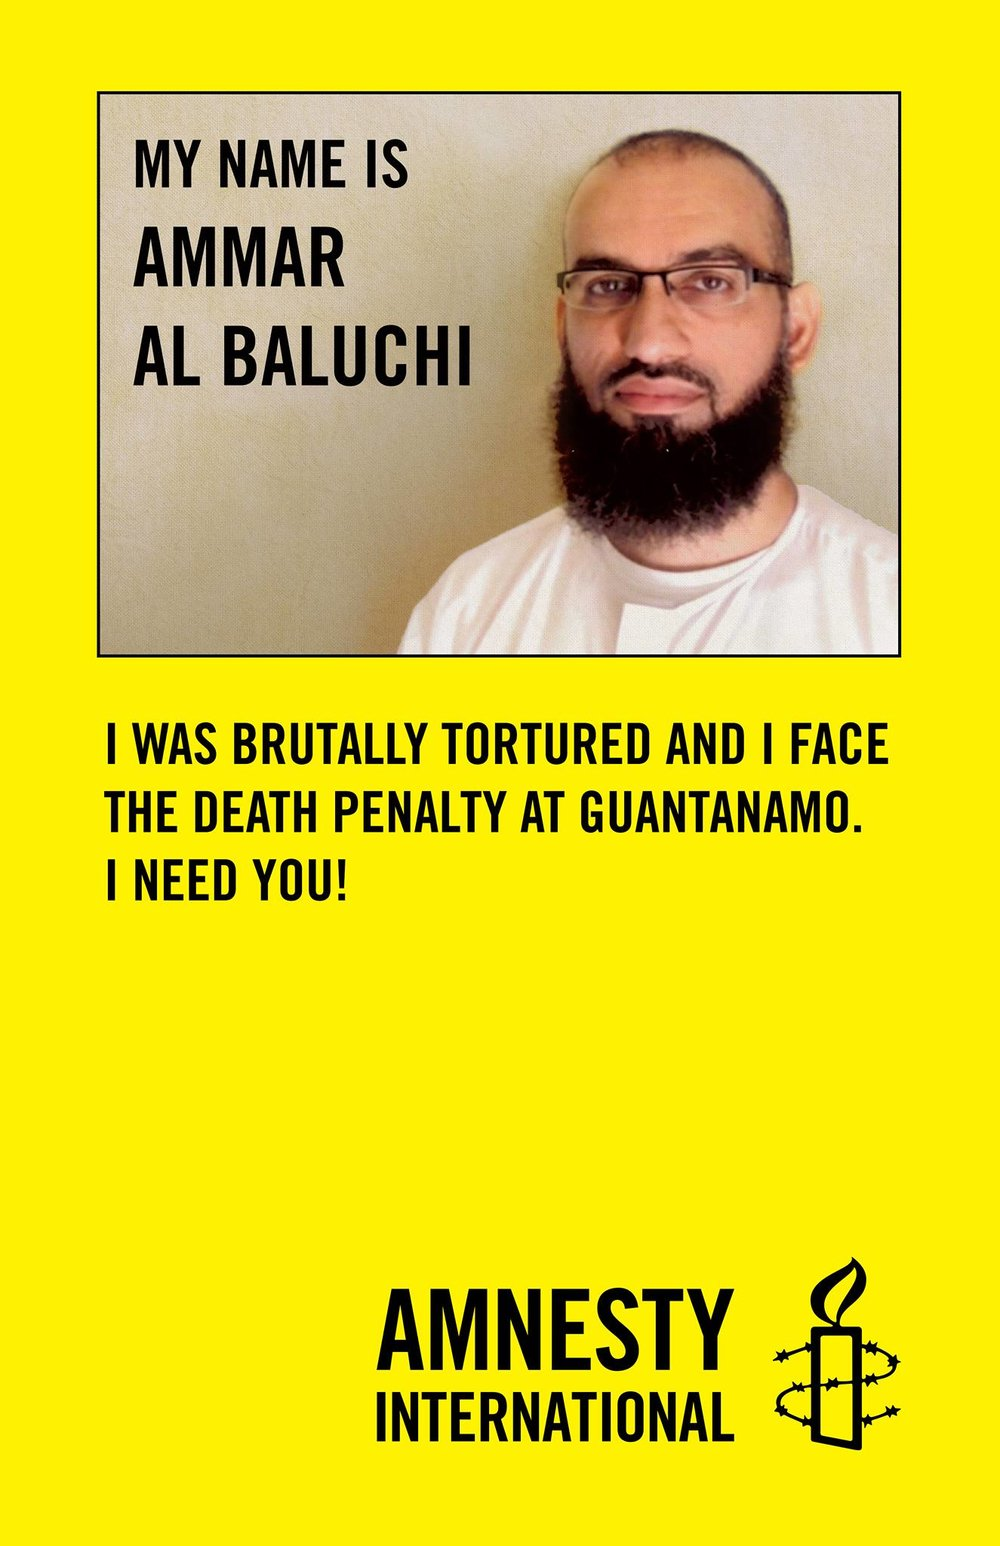 To this day he has never received adequate treatment or rehabilitation for his torture or brain injury. The government claims that even Ammar's own memories of the torture are classified and state secrets, in an attempt to prevent him from telling the world what was done to him.In 2006, Ammar was transferred to the prison at Guantánamo Bay.  Ten years later, he remains a prisoner there, still suffering from the effects of torture. The U.S. government has filed charges against Ammar before the Guantánamo Bay military commissions, for an alleged role in the September 11, 2001 attacks. The case against Ammar and four other defendants has now been in pre-trial proceedings for four years, as the government has interfered with Ammar's attorney-client privileged communications, planted a listening device in the attorney-client meeting rooms, recruited informants on defense teams, and continued the inhuman and degrading treatment of Ammar and other prisoners at Guantánamo Bay.  -